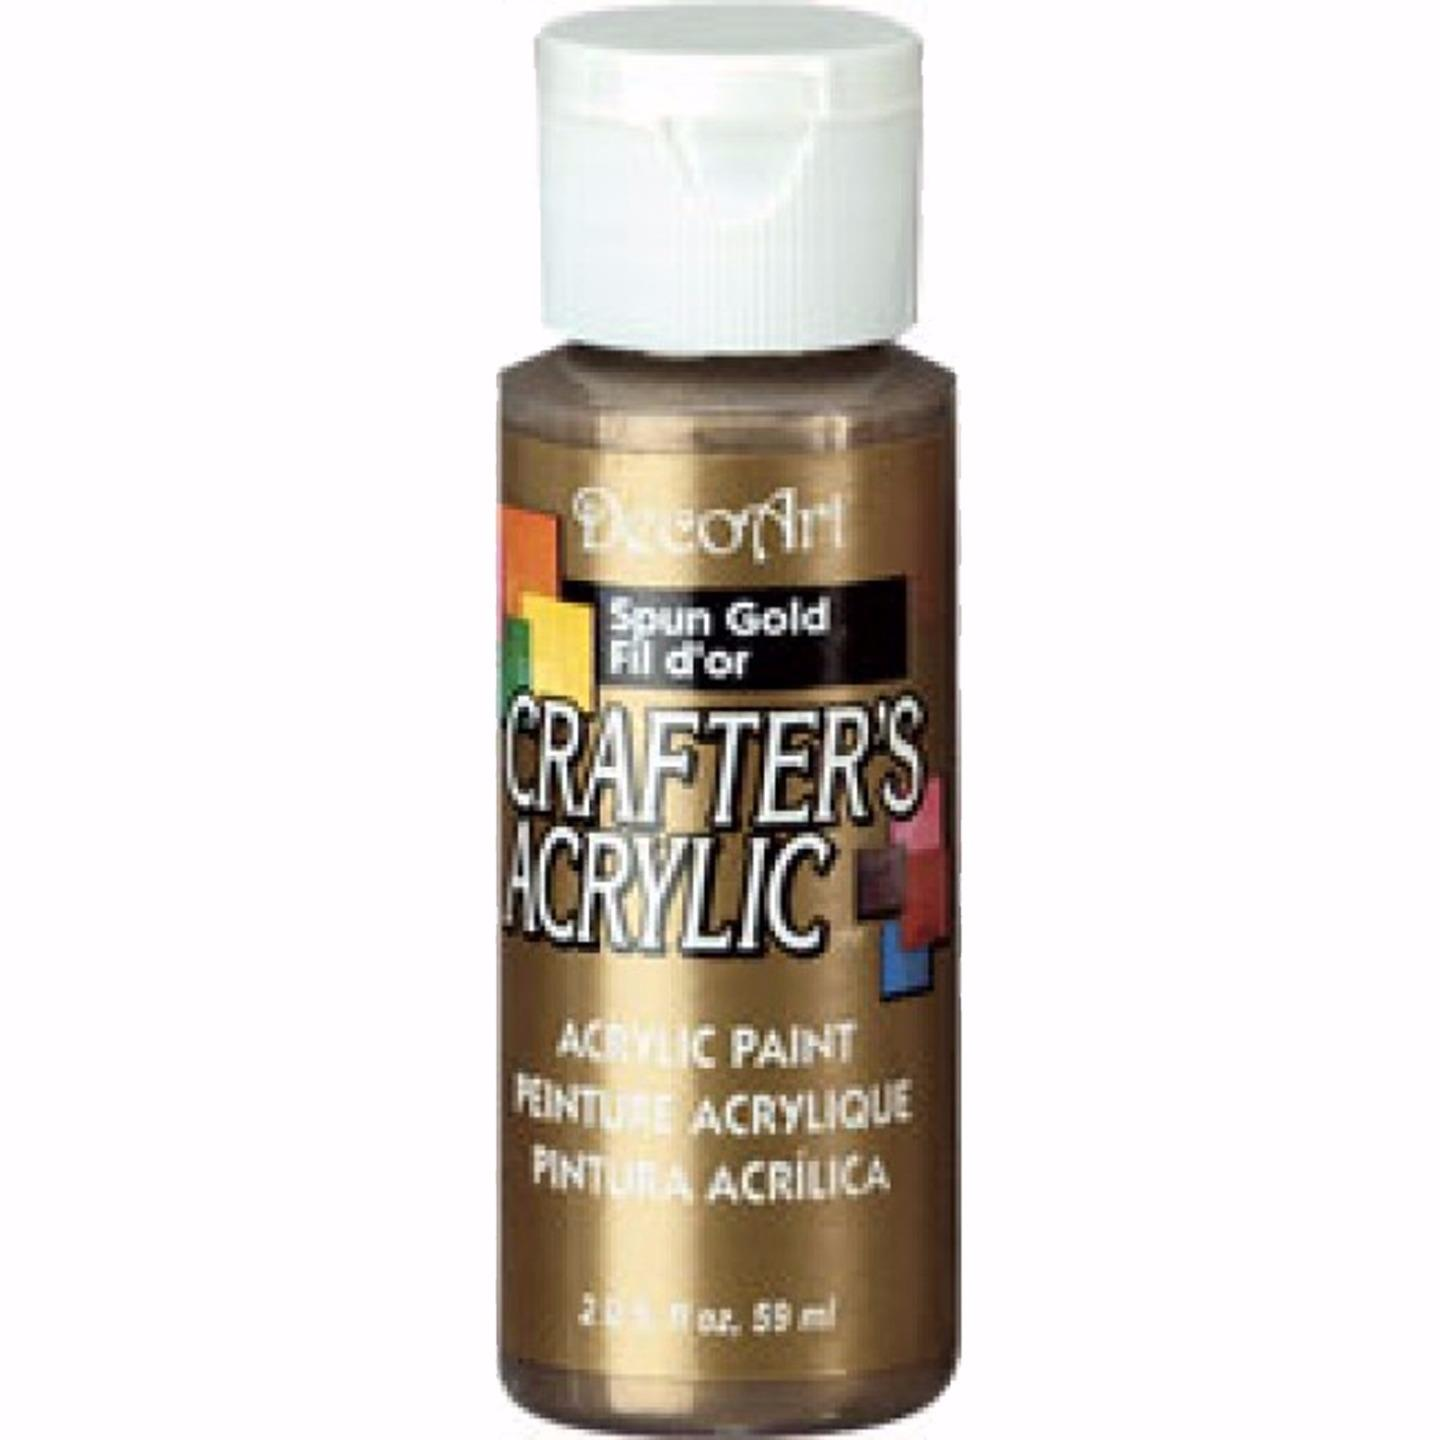 Crafters Acrylic All Purpose Paint